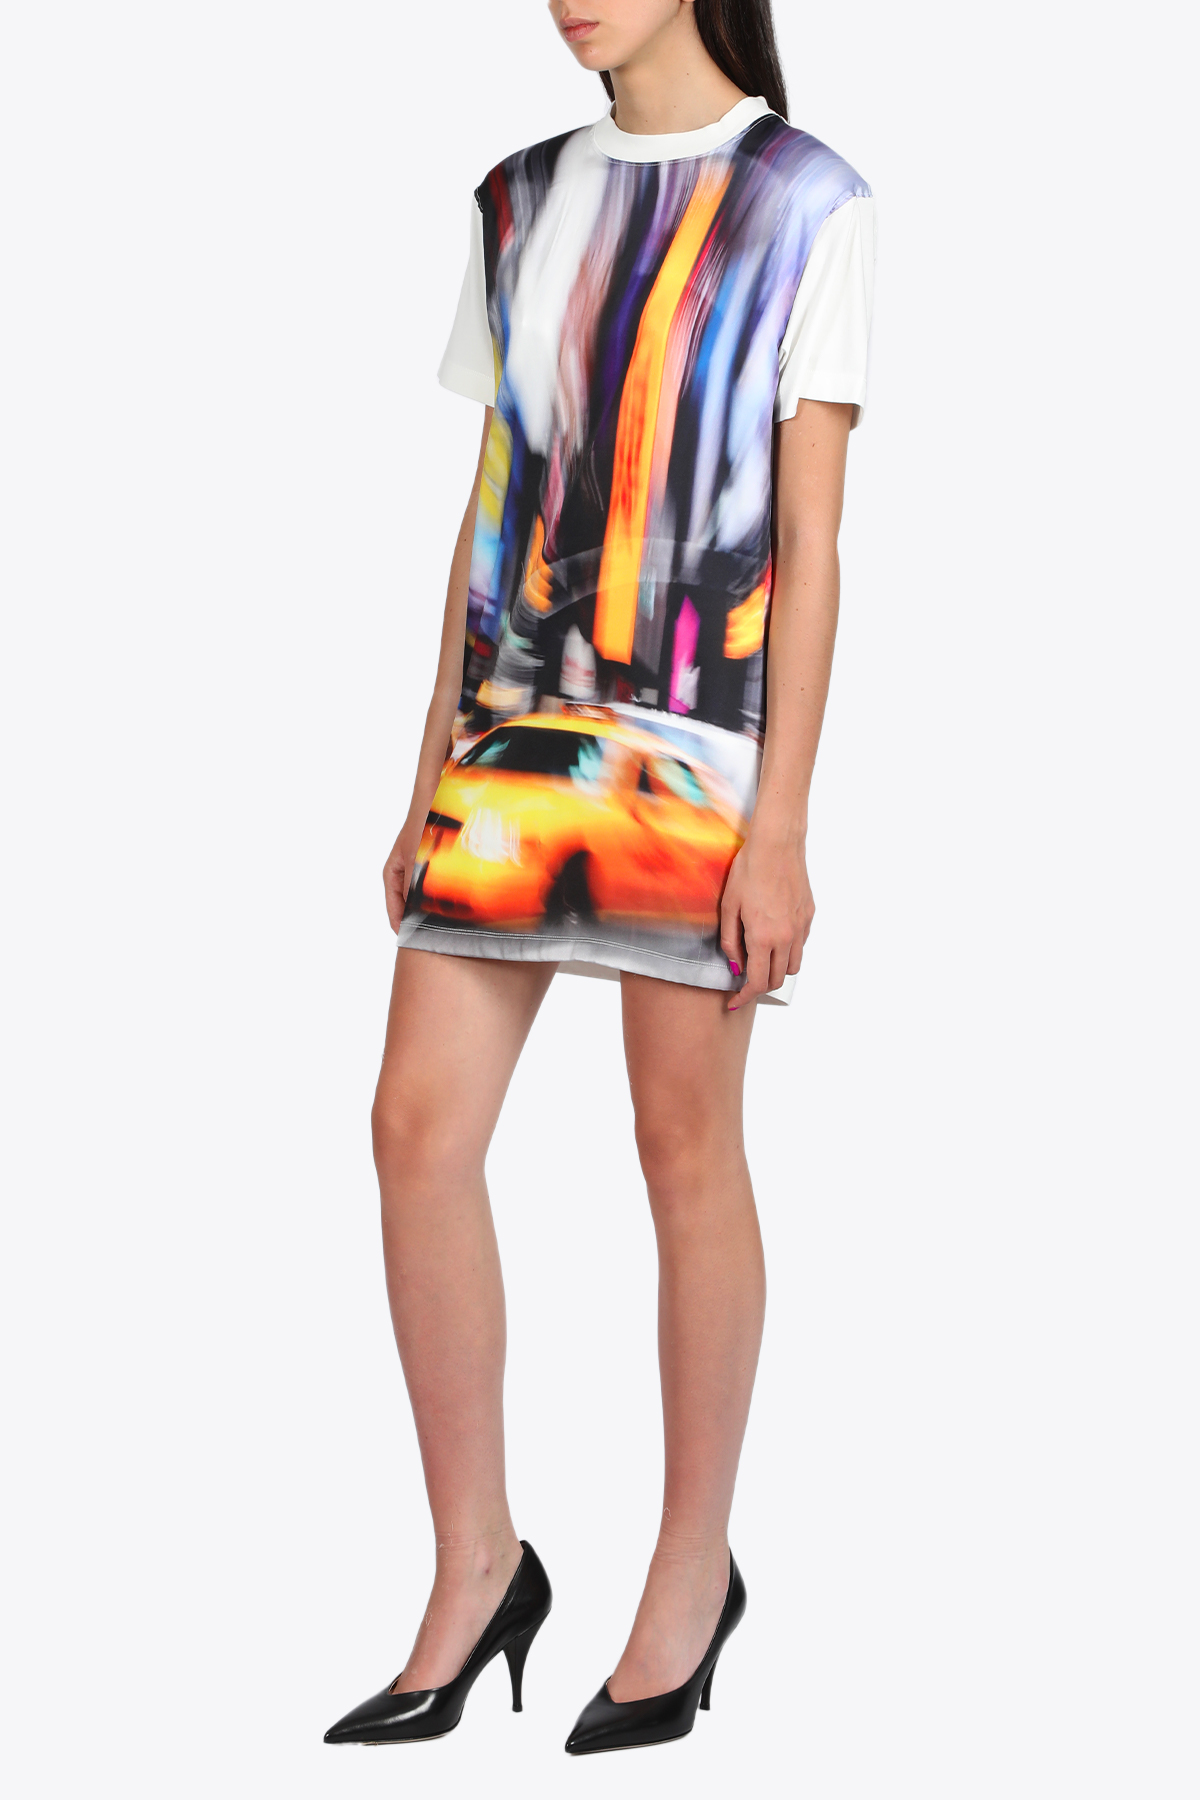 T-SHIRT DRESS SATIN TAXI HERON PRESTON | 11 | HWDB027R20914005 T-SHIRT DRESS SATIN TAX0188